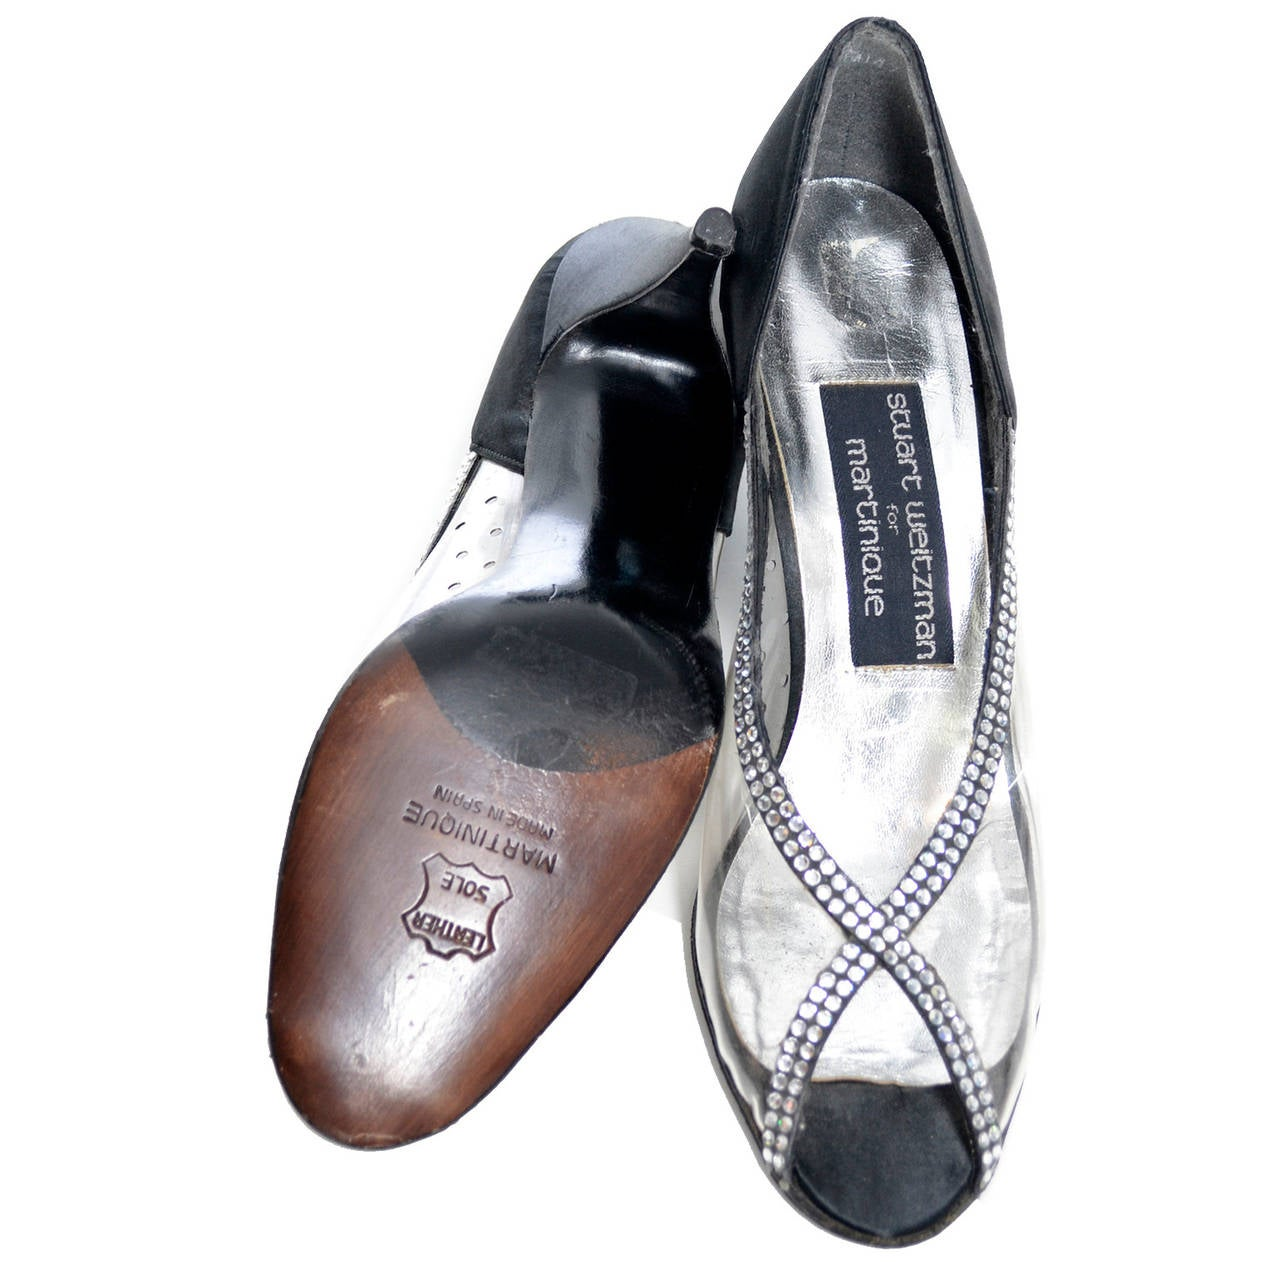 Women's Stuart Weitzman Size 7 New Vintage Black Satin Shoes With Crystals & Rhinestones For Sale